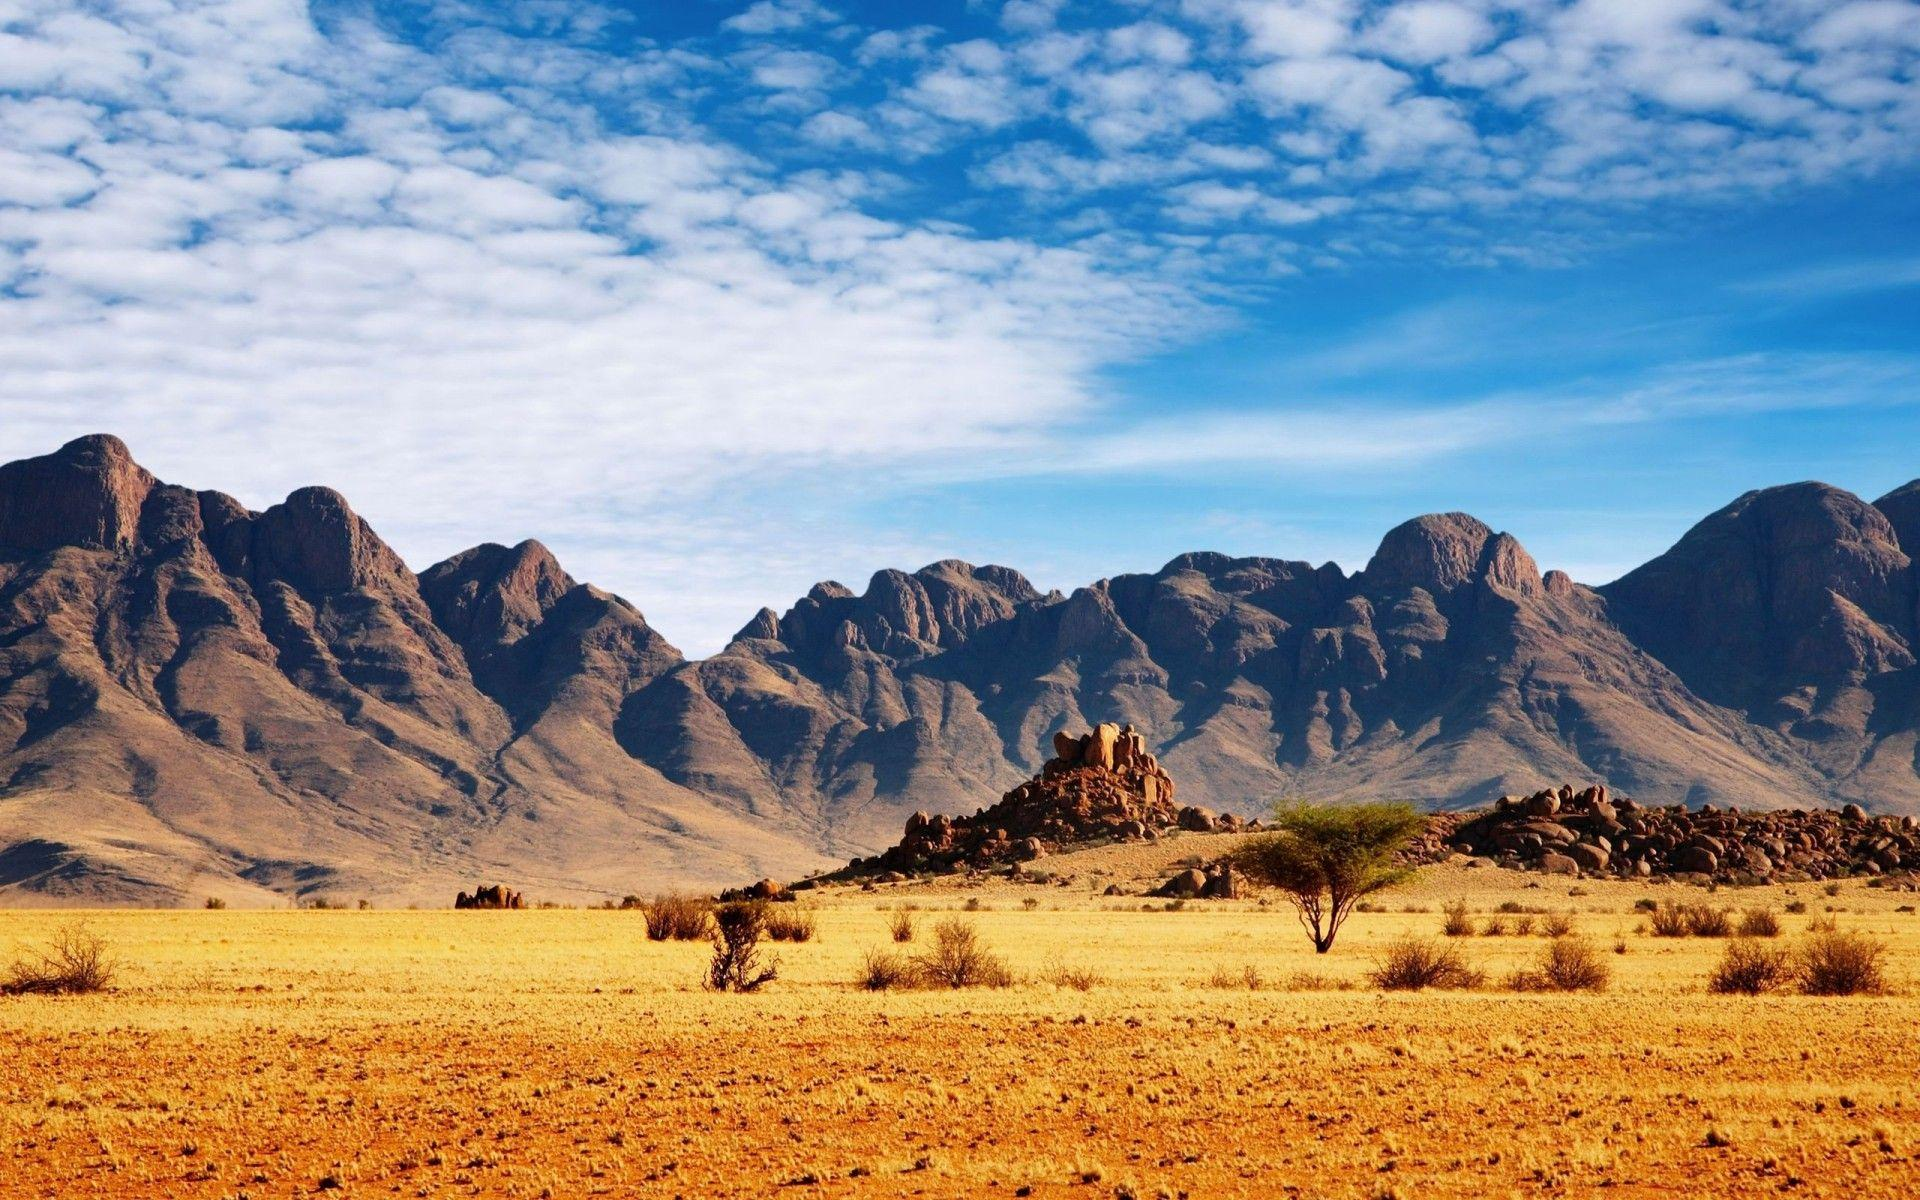 Mountain Scenic Desert Namibia wallpapers | Mountain Scenic Desert ...